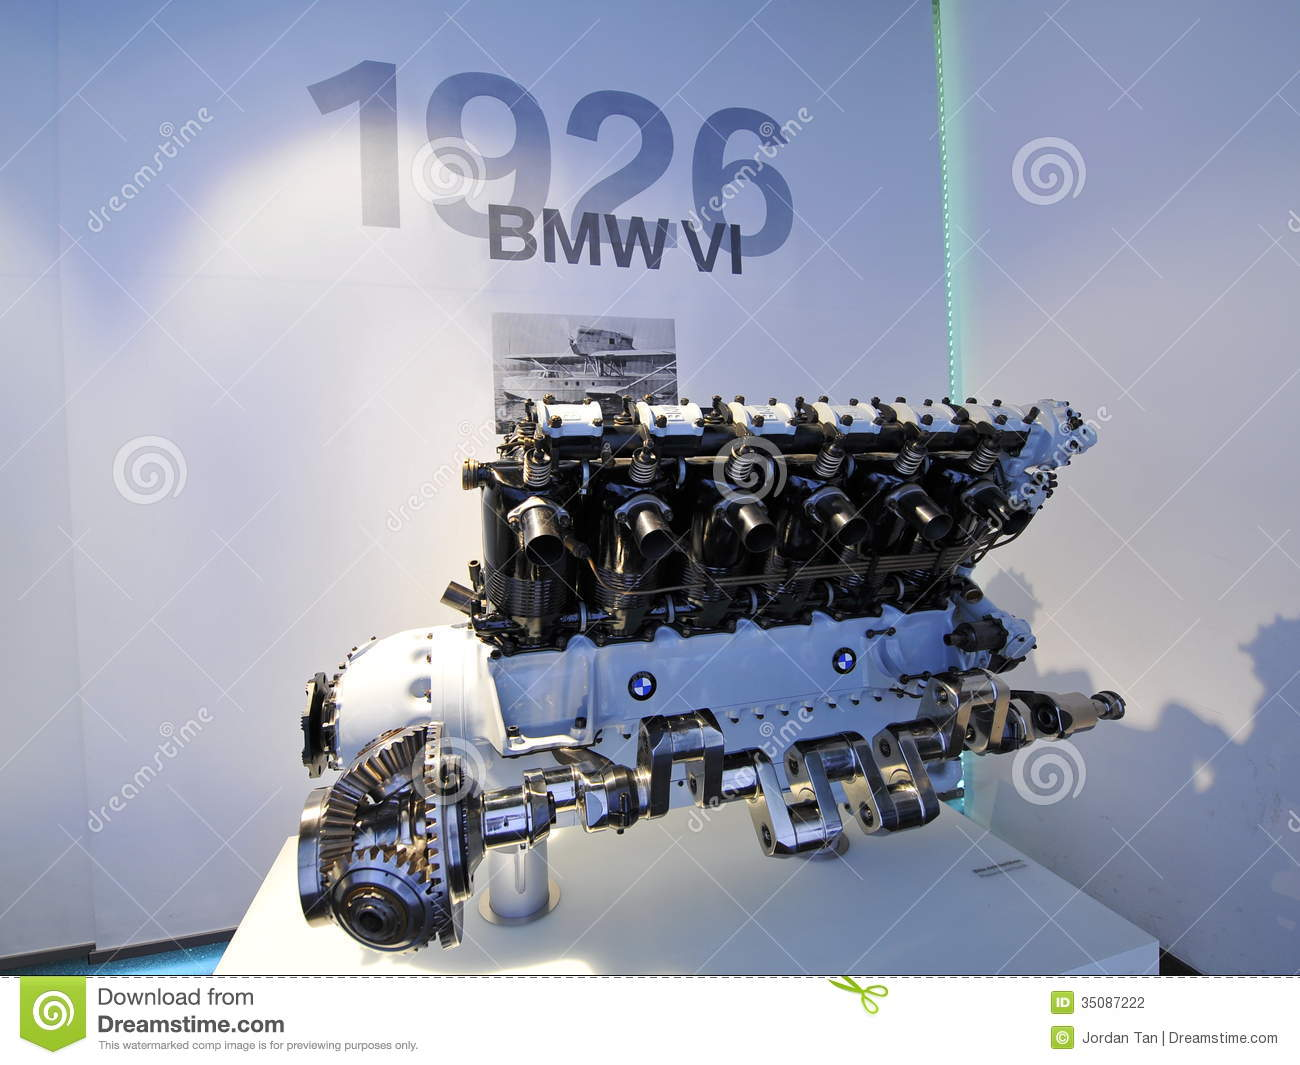 12 Cylinders Bmw Vi Engine On Display In Bmw Museum